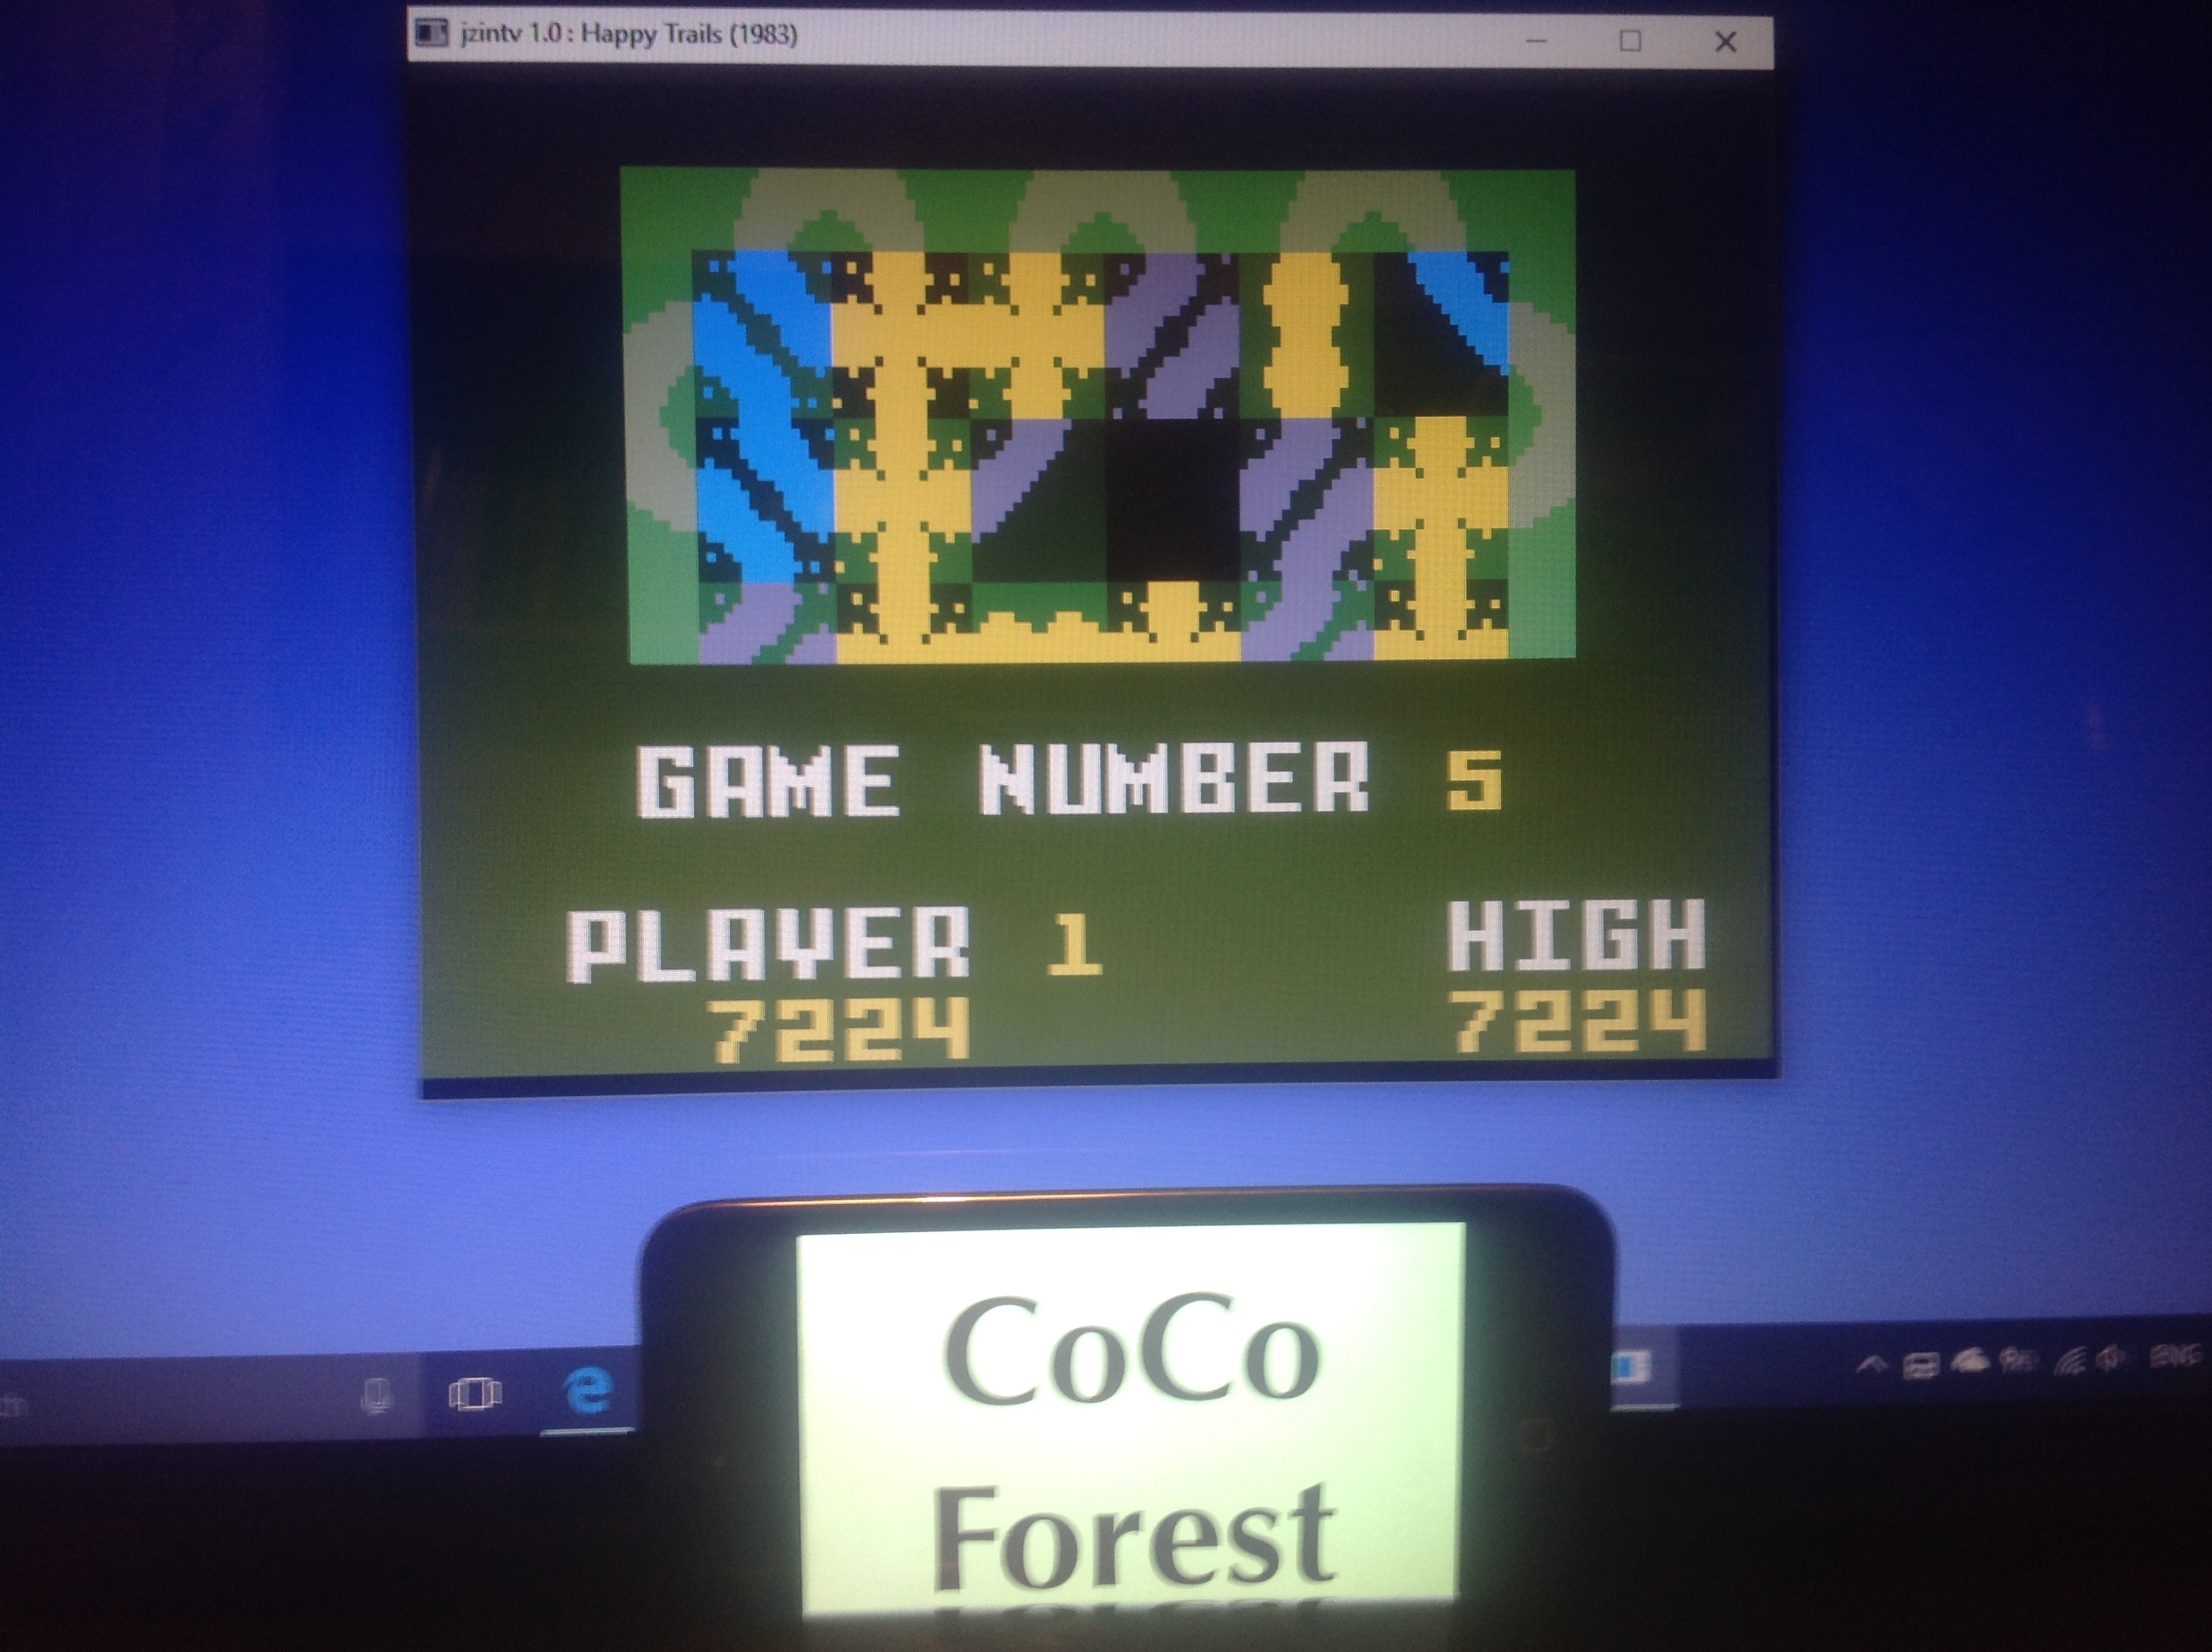 CoCoForest: Happy Trails: Skill 5 (Intellivision Emulated) 7,224 points on 2018-01-23 11:31:42